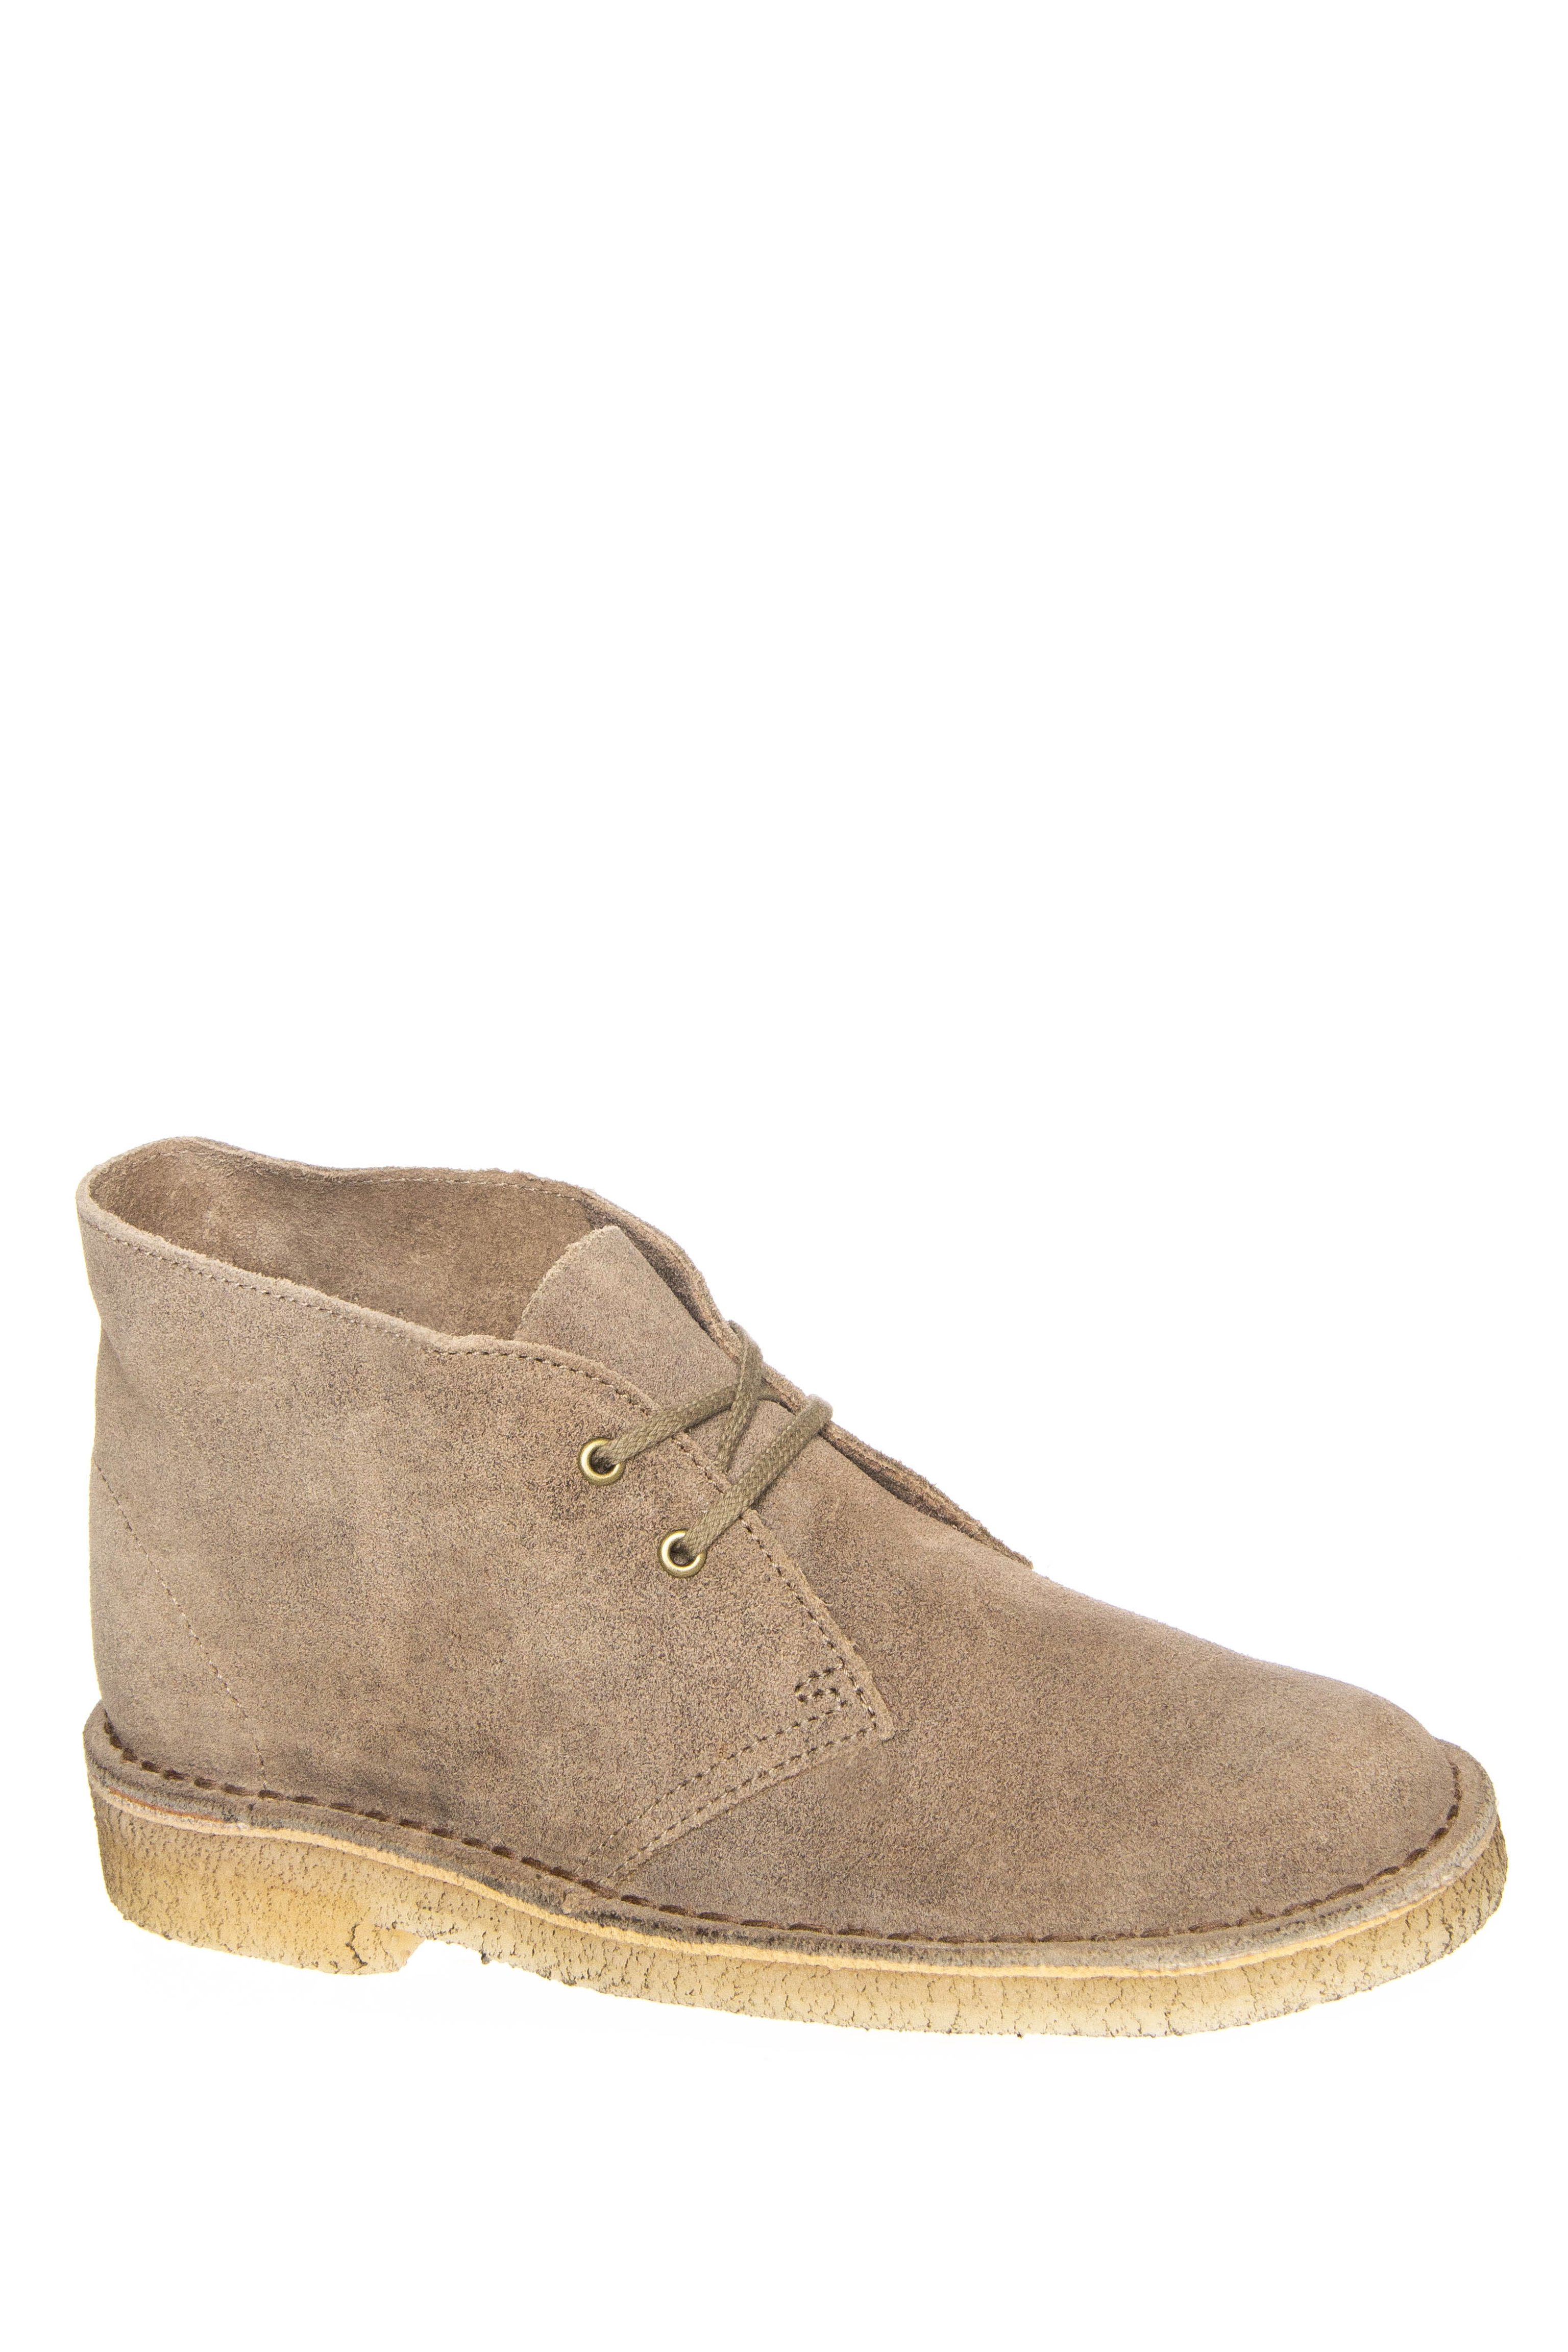 Clarks Desert Low Heel Boots - Taupe Distressed